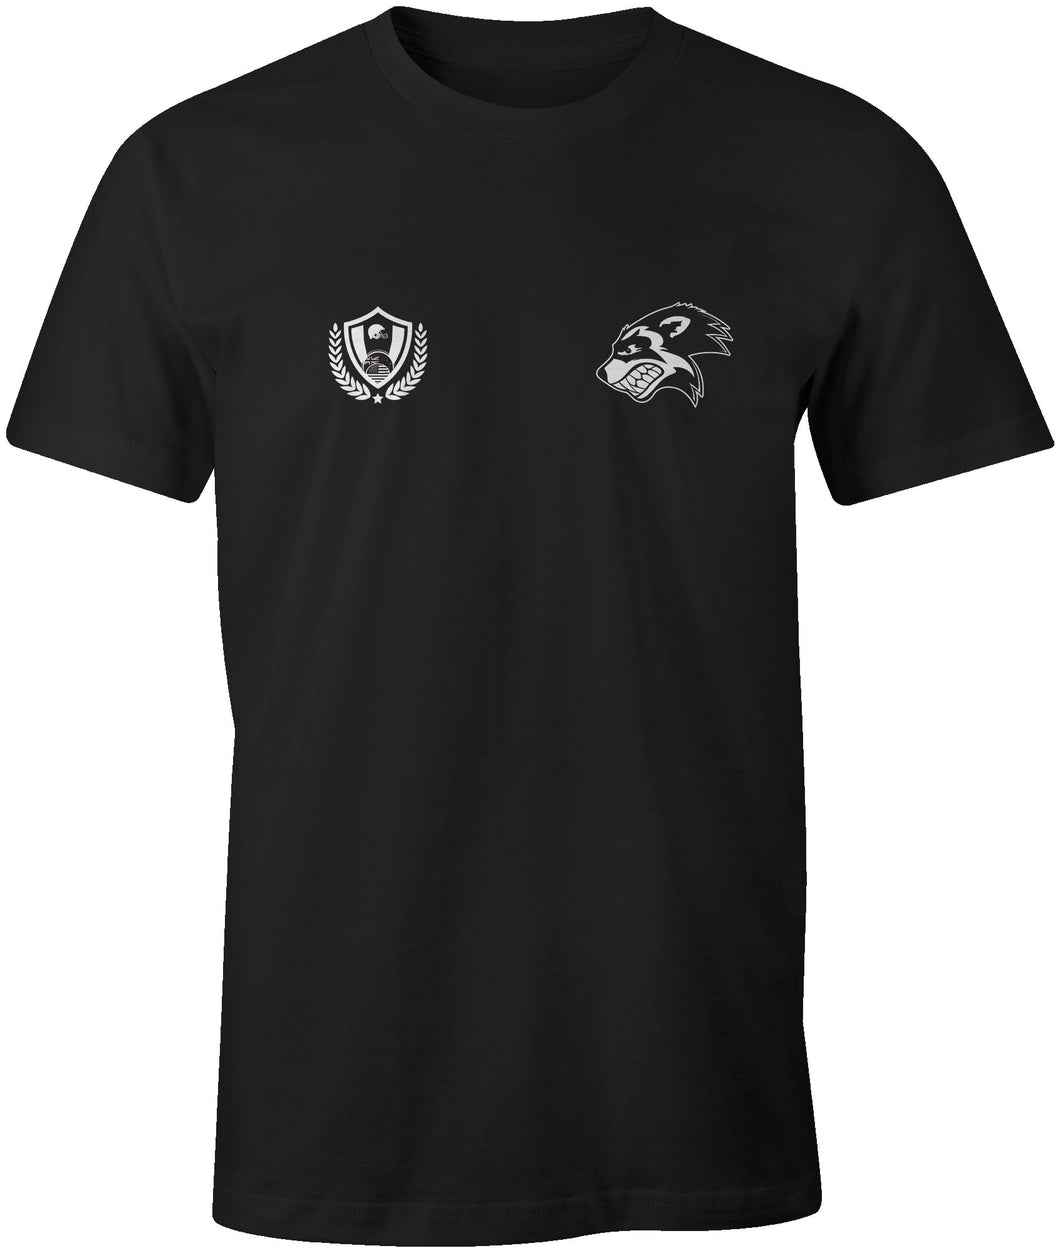 Ice Training T-shirt